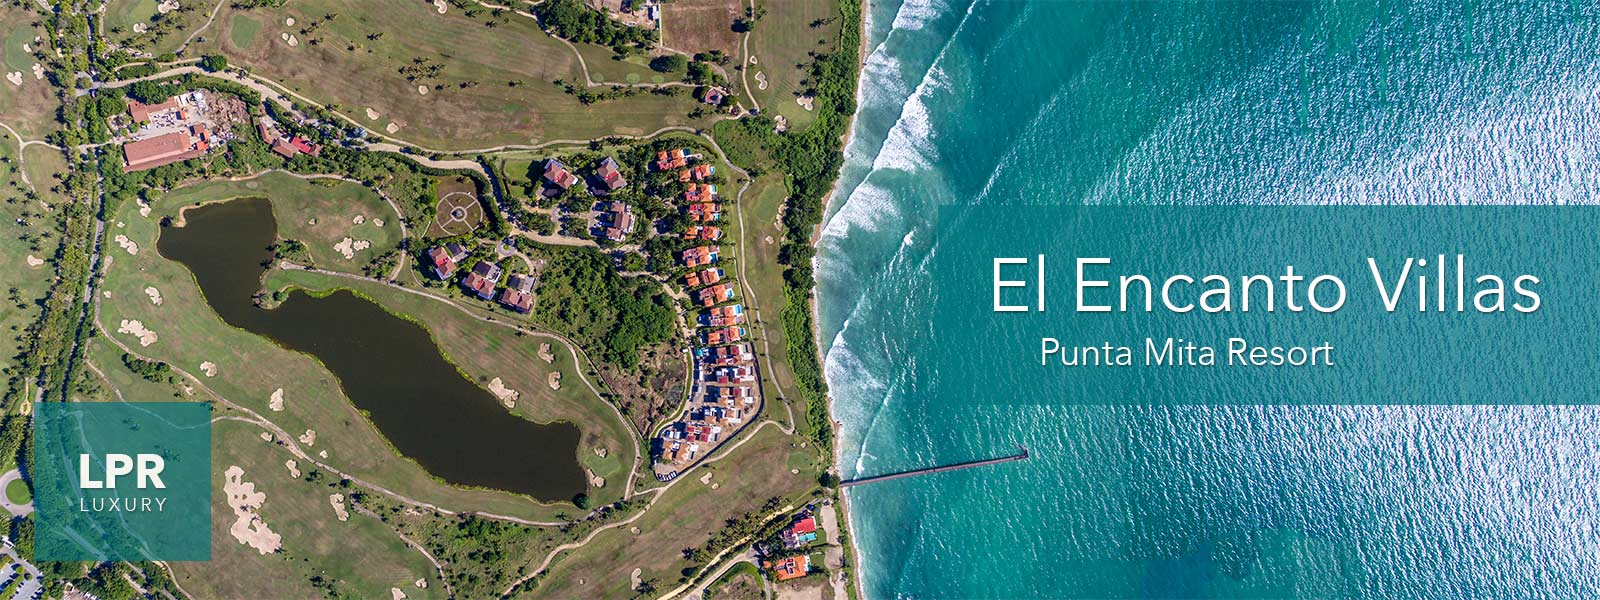 El Encanto Villas at El Encanto - Punta Mita Mexico Real Estate for Sale